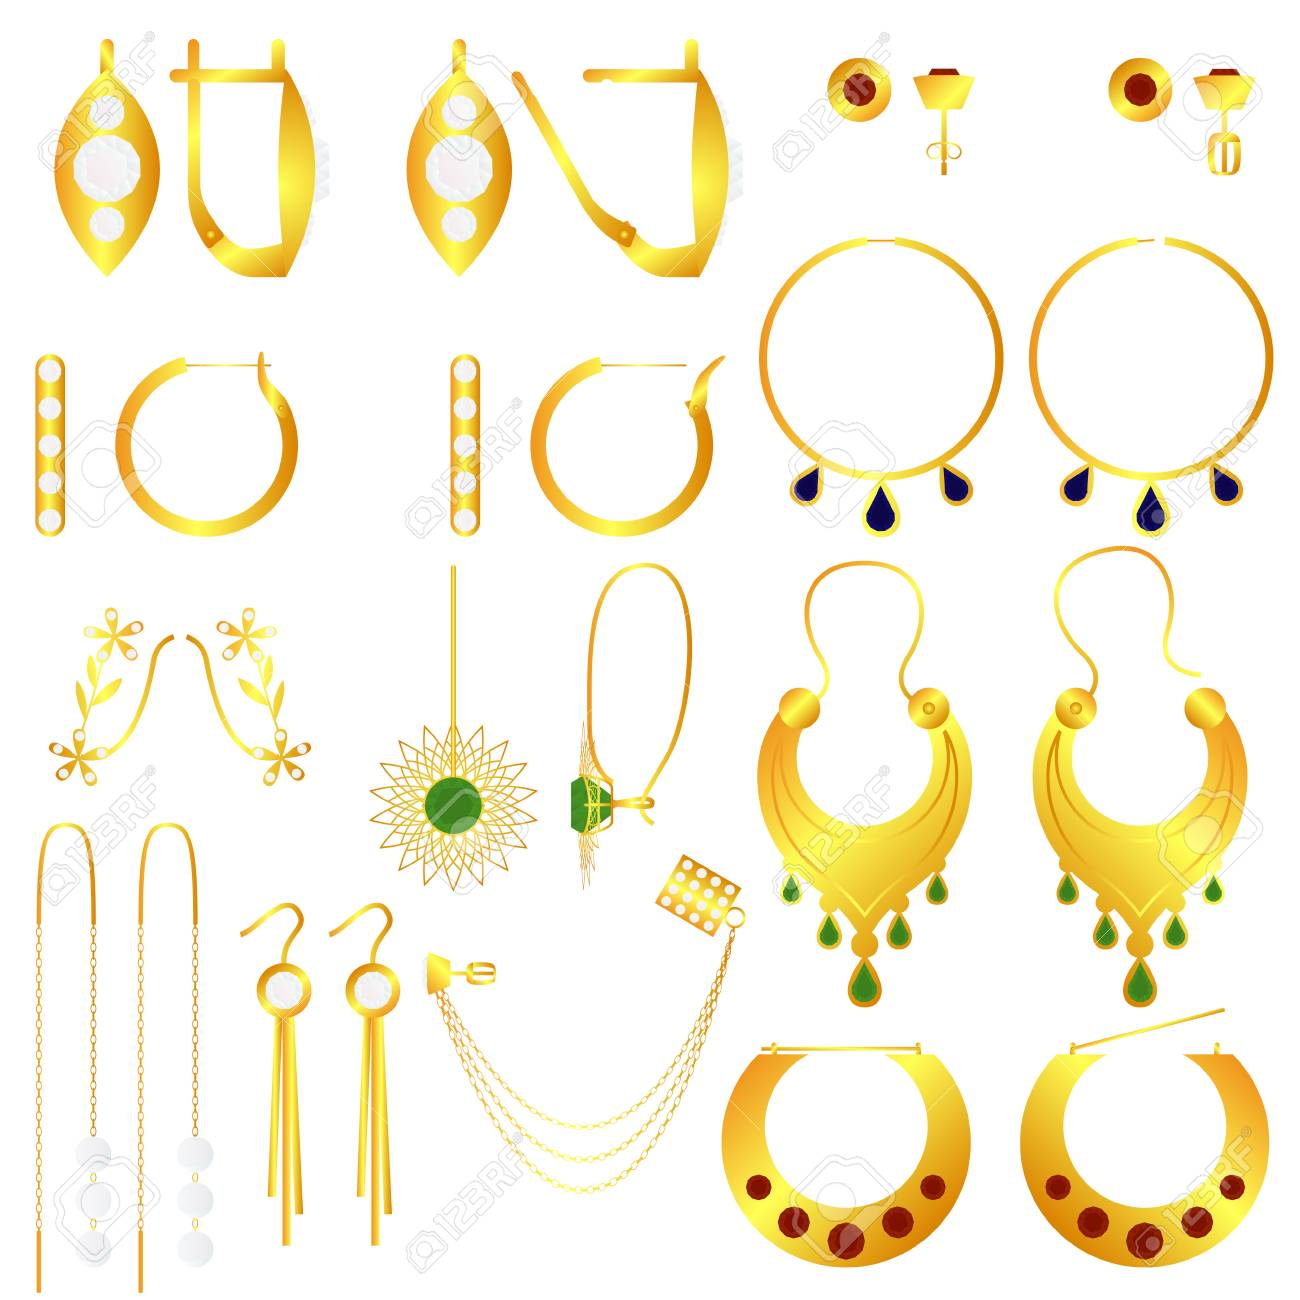 Earring Clasp Types Golden Earrings Vector Set Royalty Free Cliparts